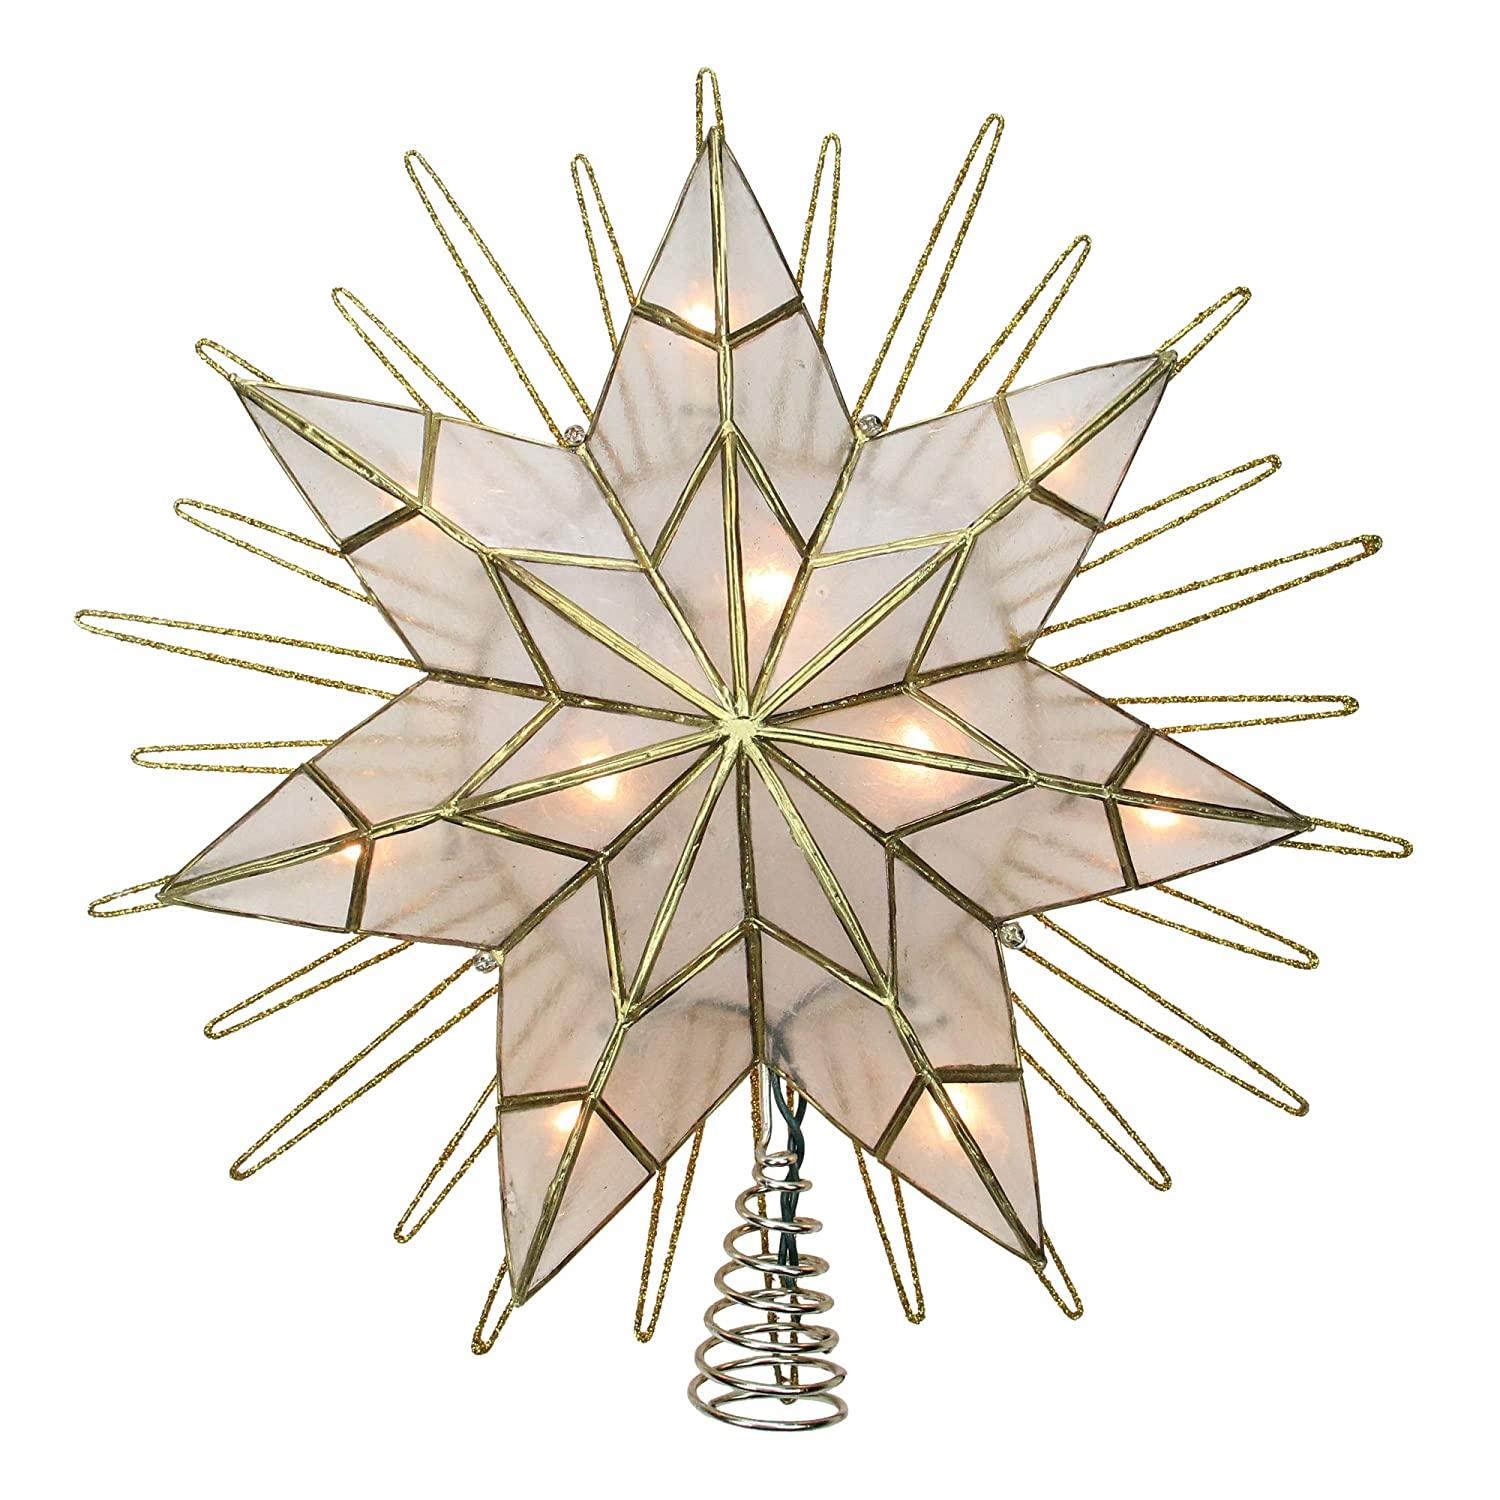 14 Lighted Capiz Sunburst 7-Point Star Christmas Tree Topper - Clear Lights KSA